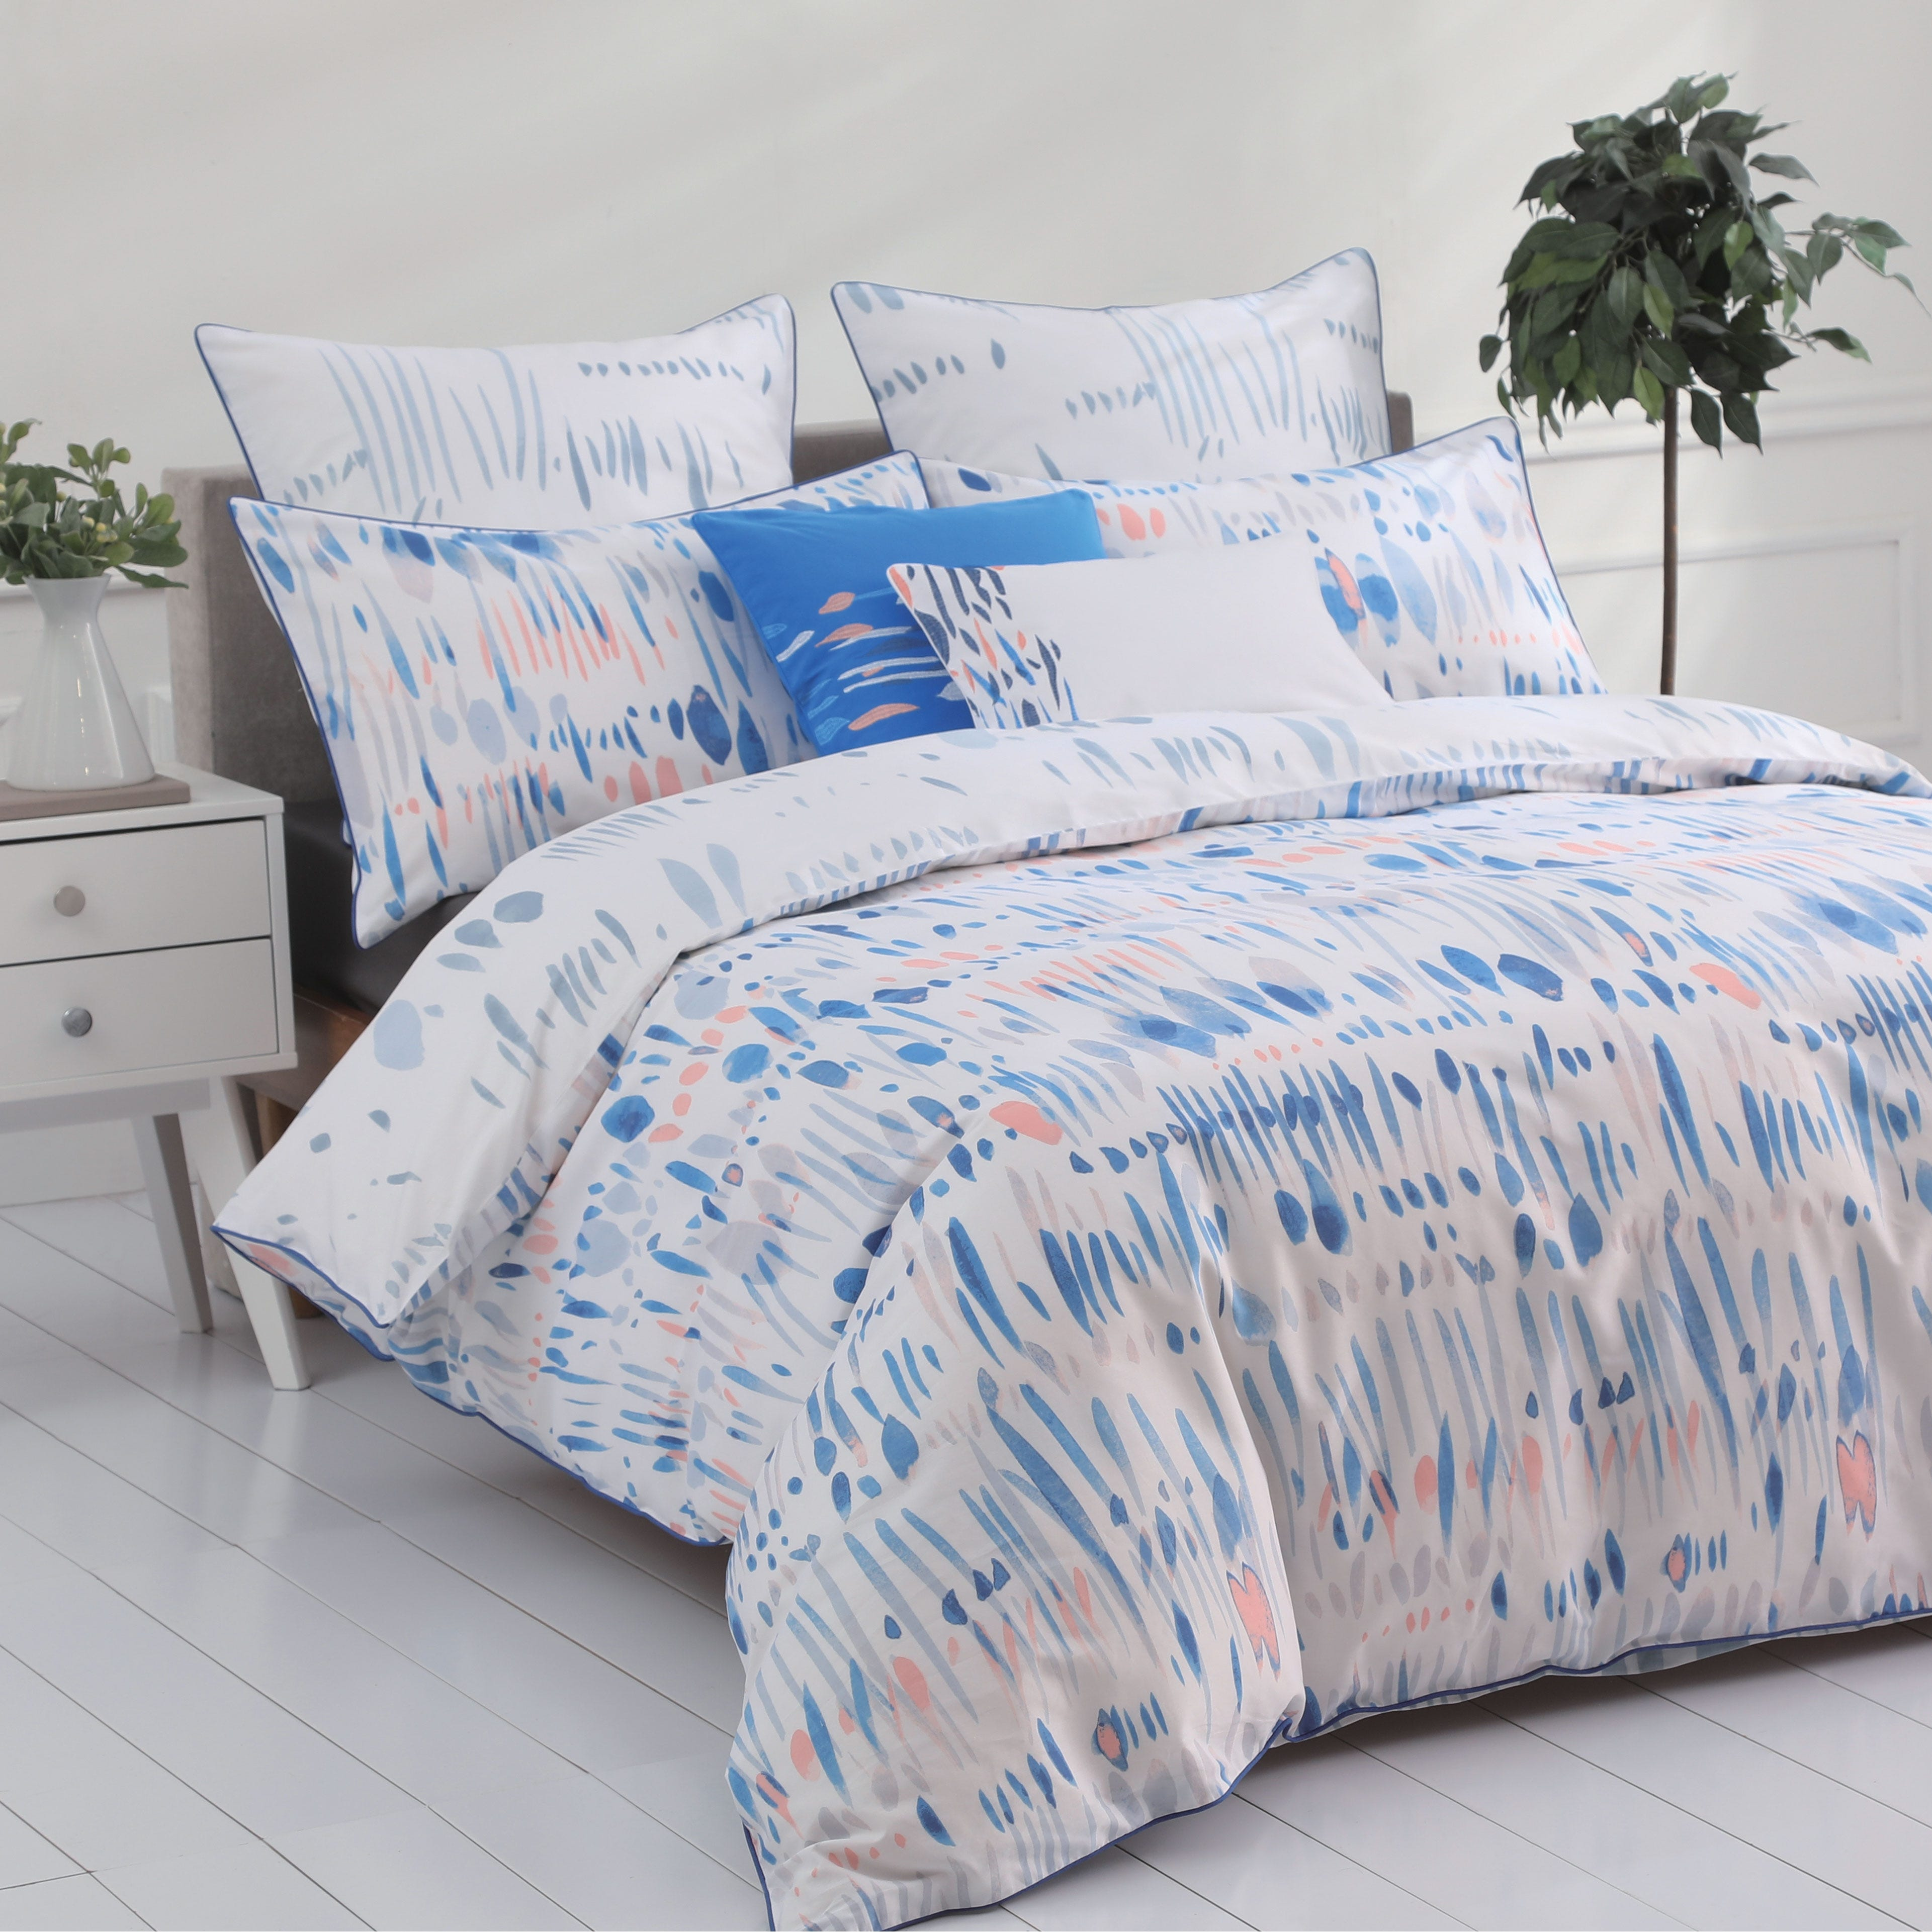 king twin bed bedding comforter quilts hawaiian bedspreads print themes tropical coastal comfort quilt bedroom sets for terrific colorful size bealls